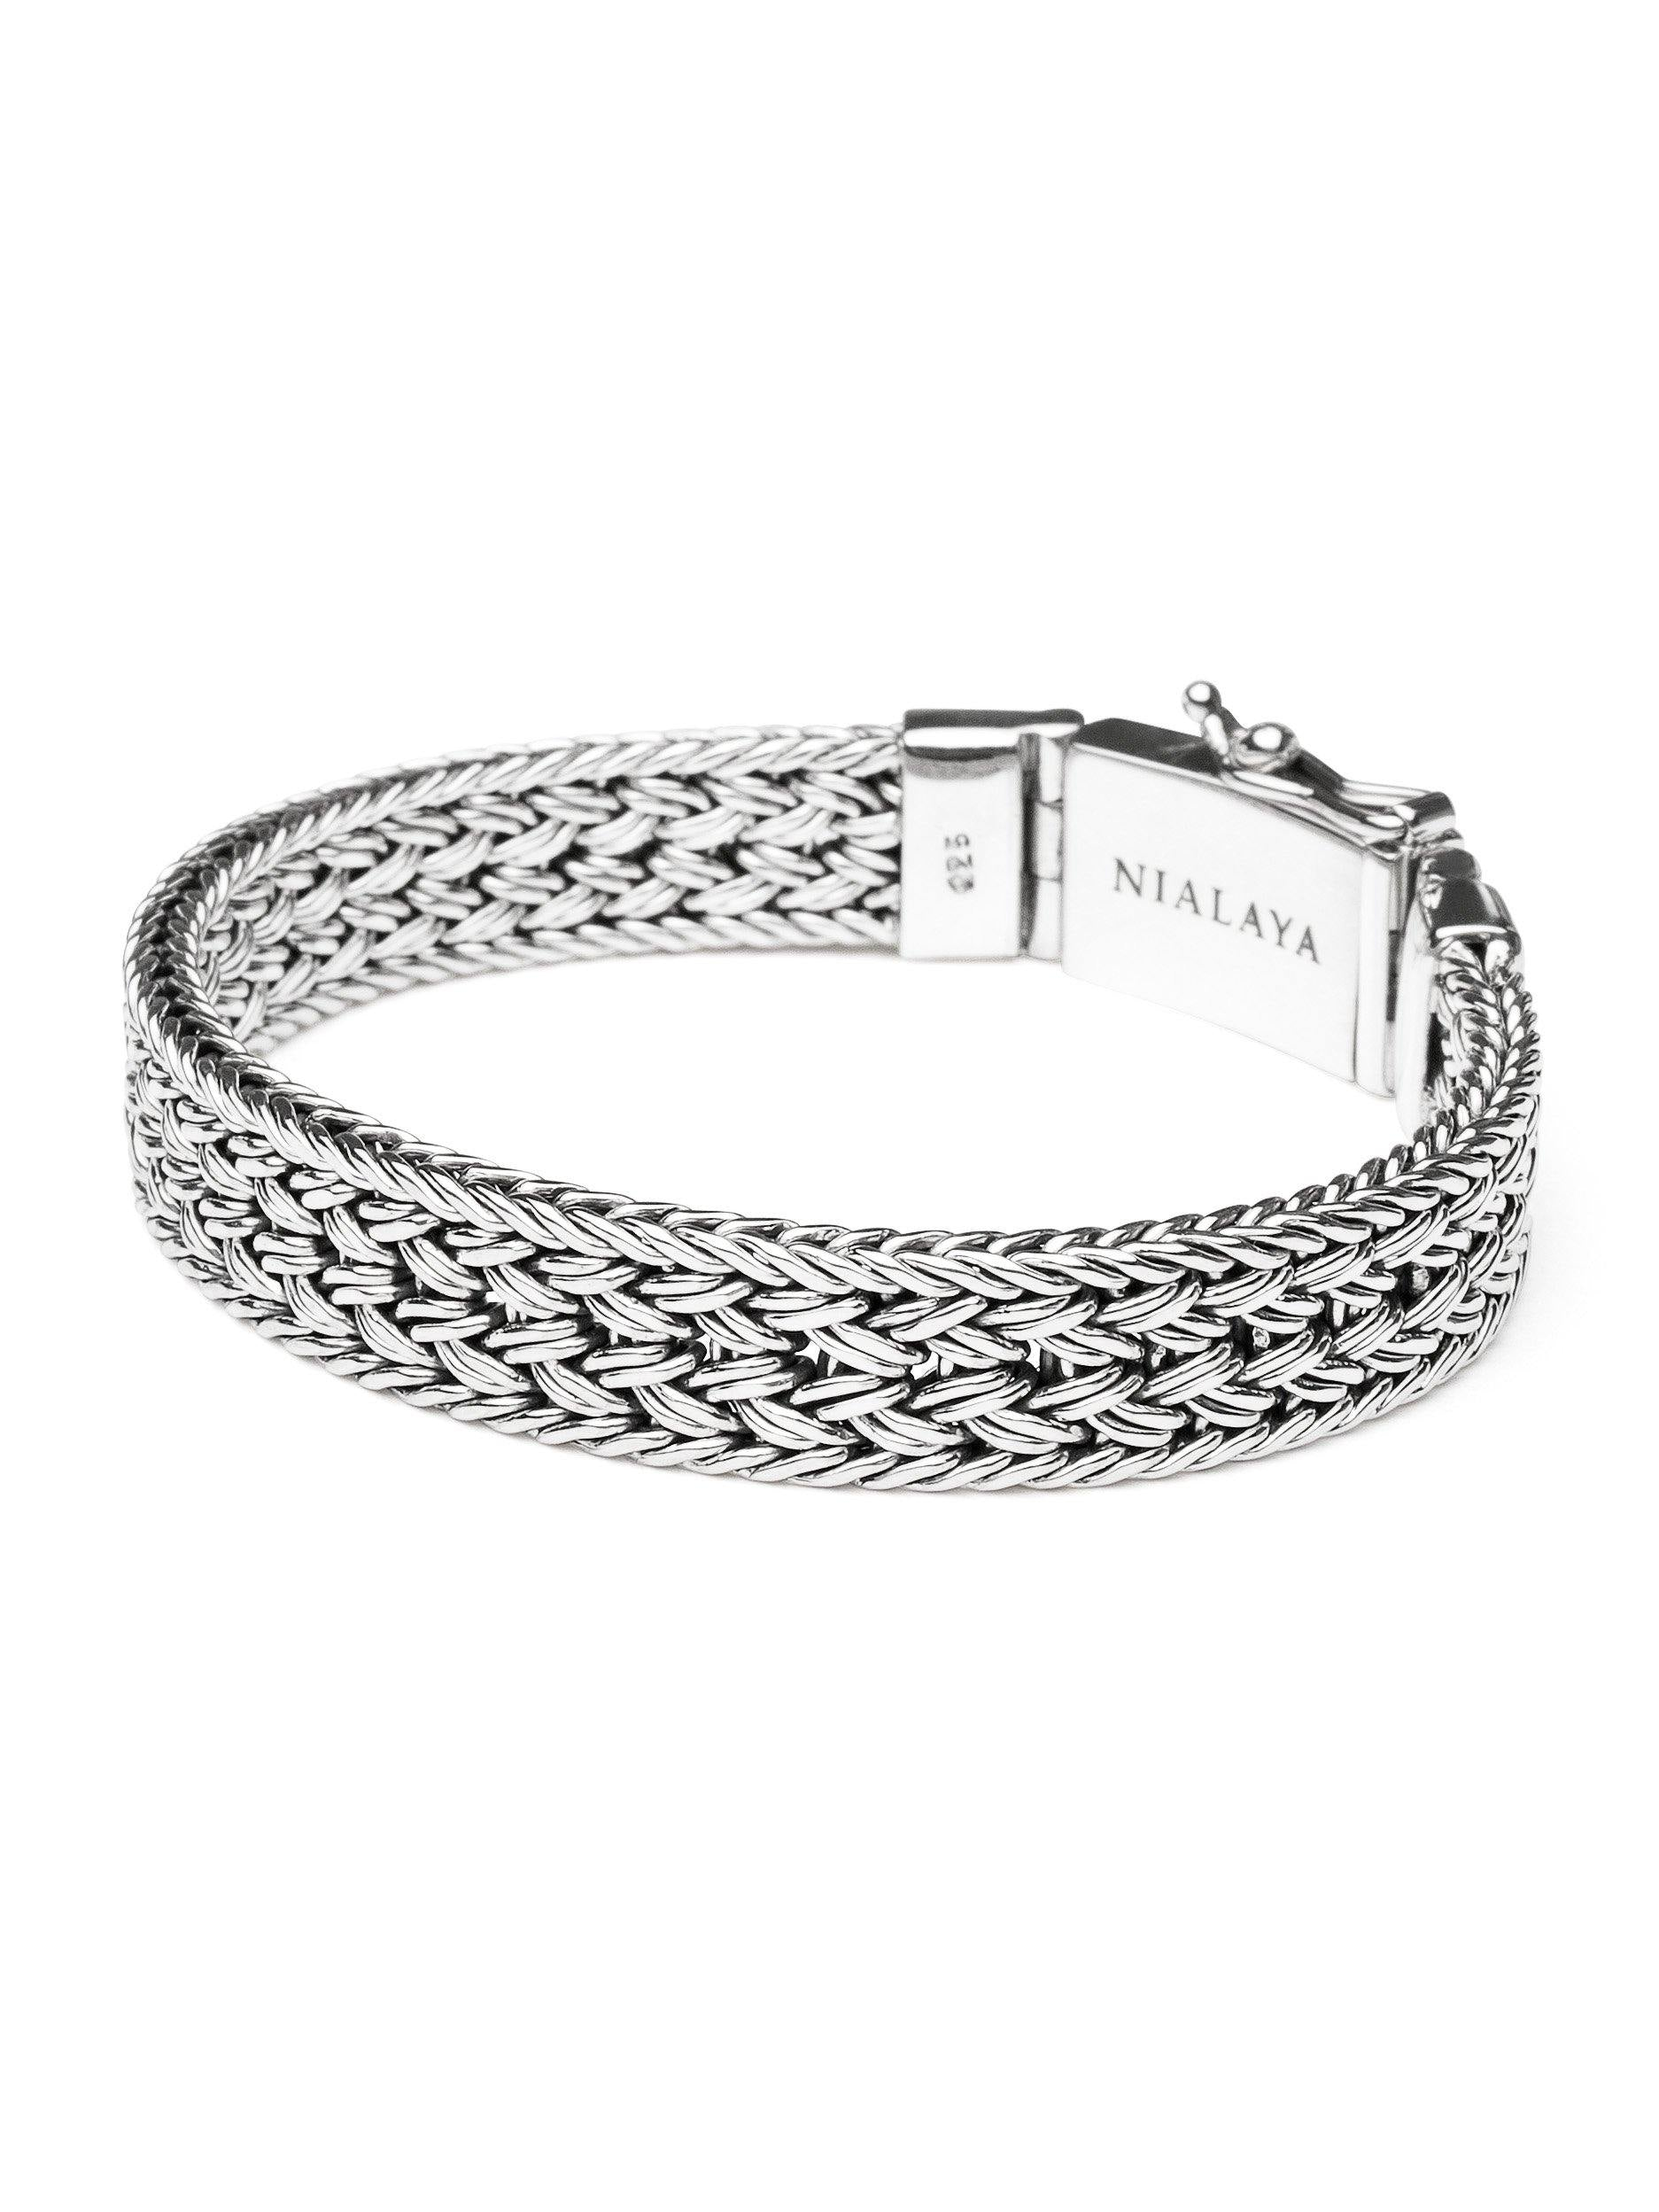 Men's Silver Braided Chain Bracelet - Nialaya Jewelry